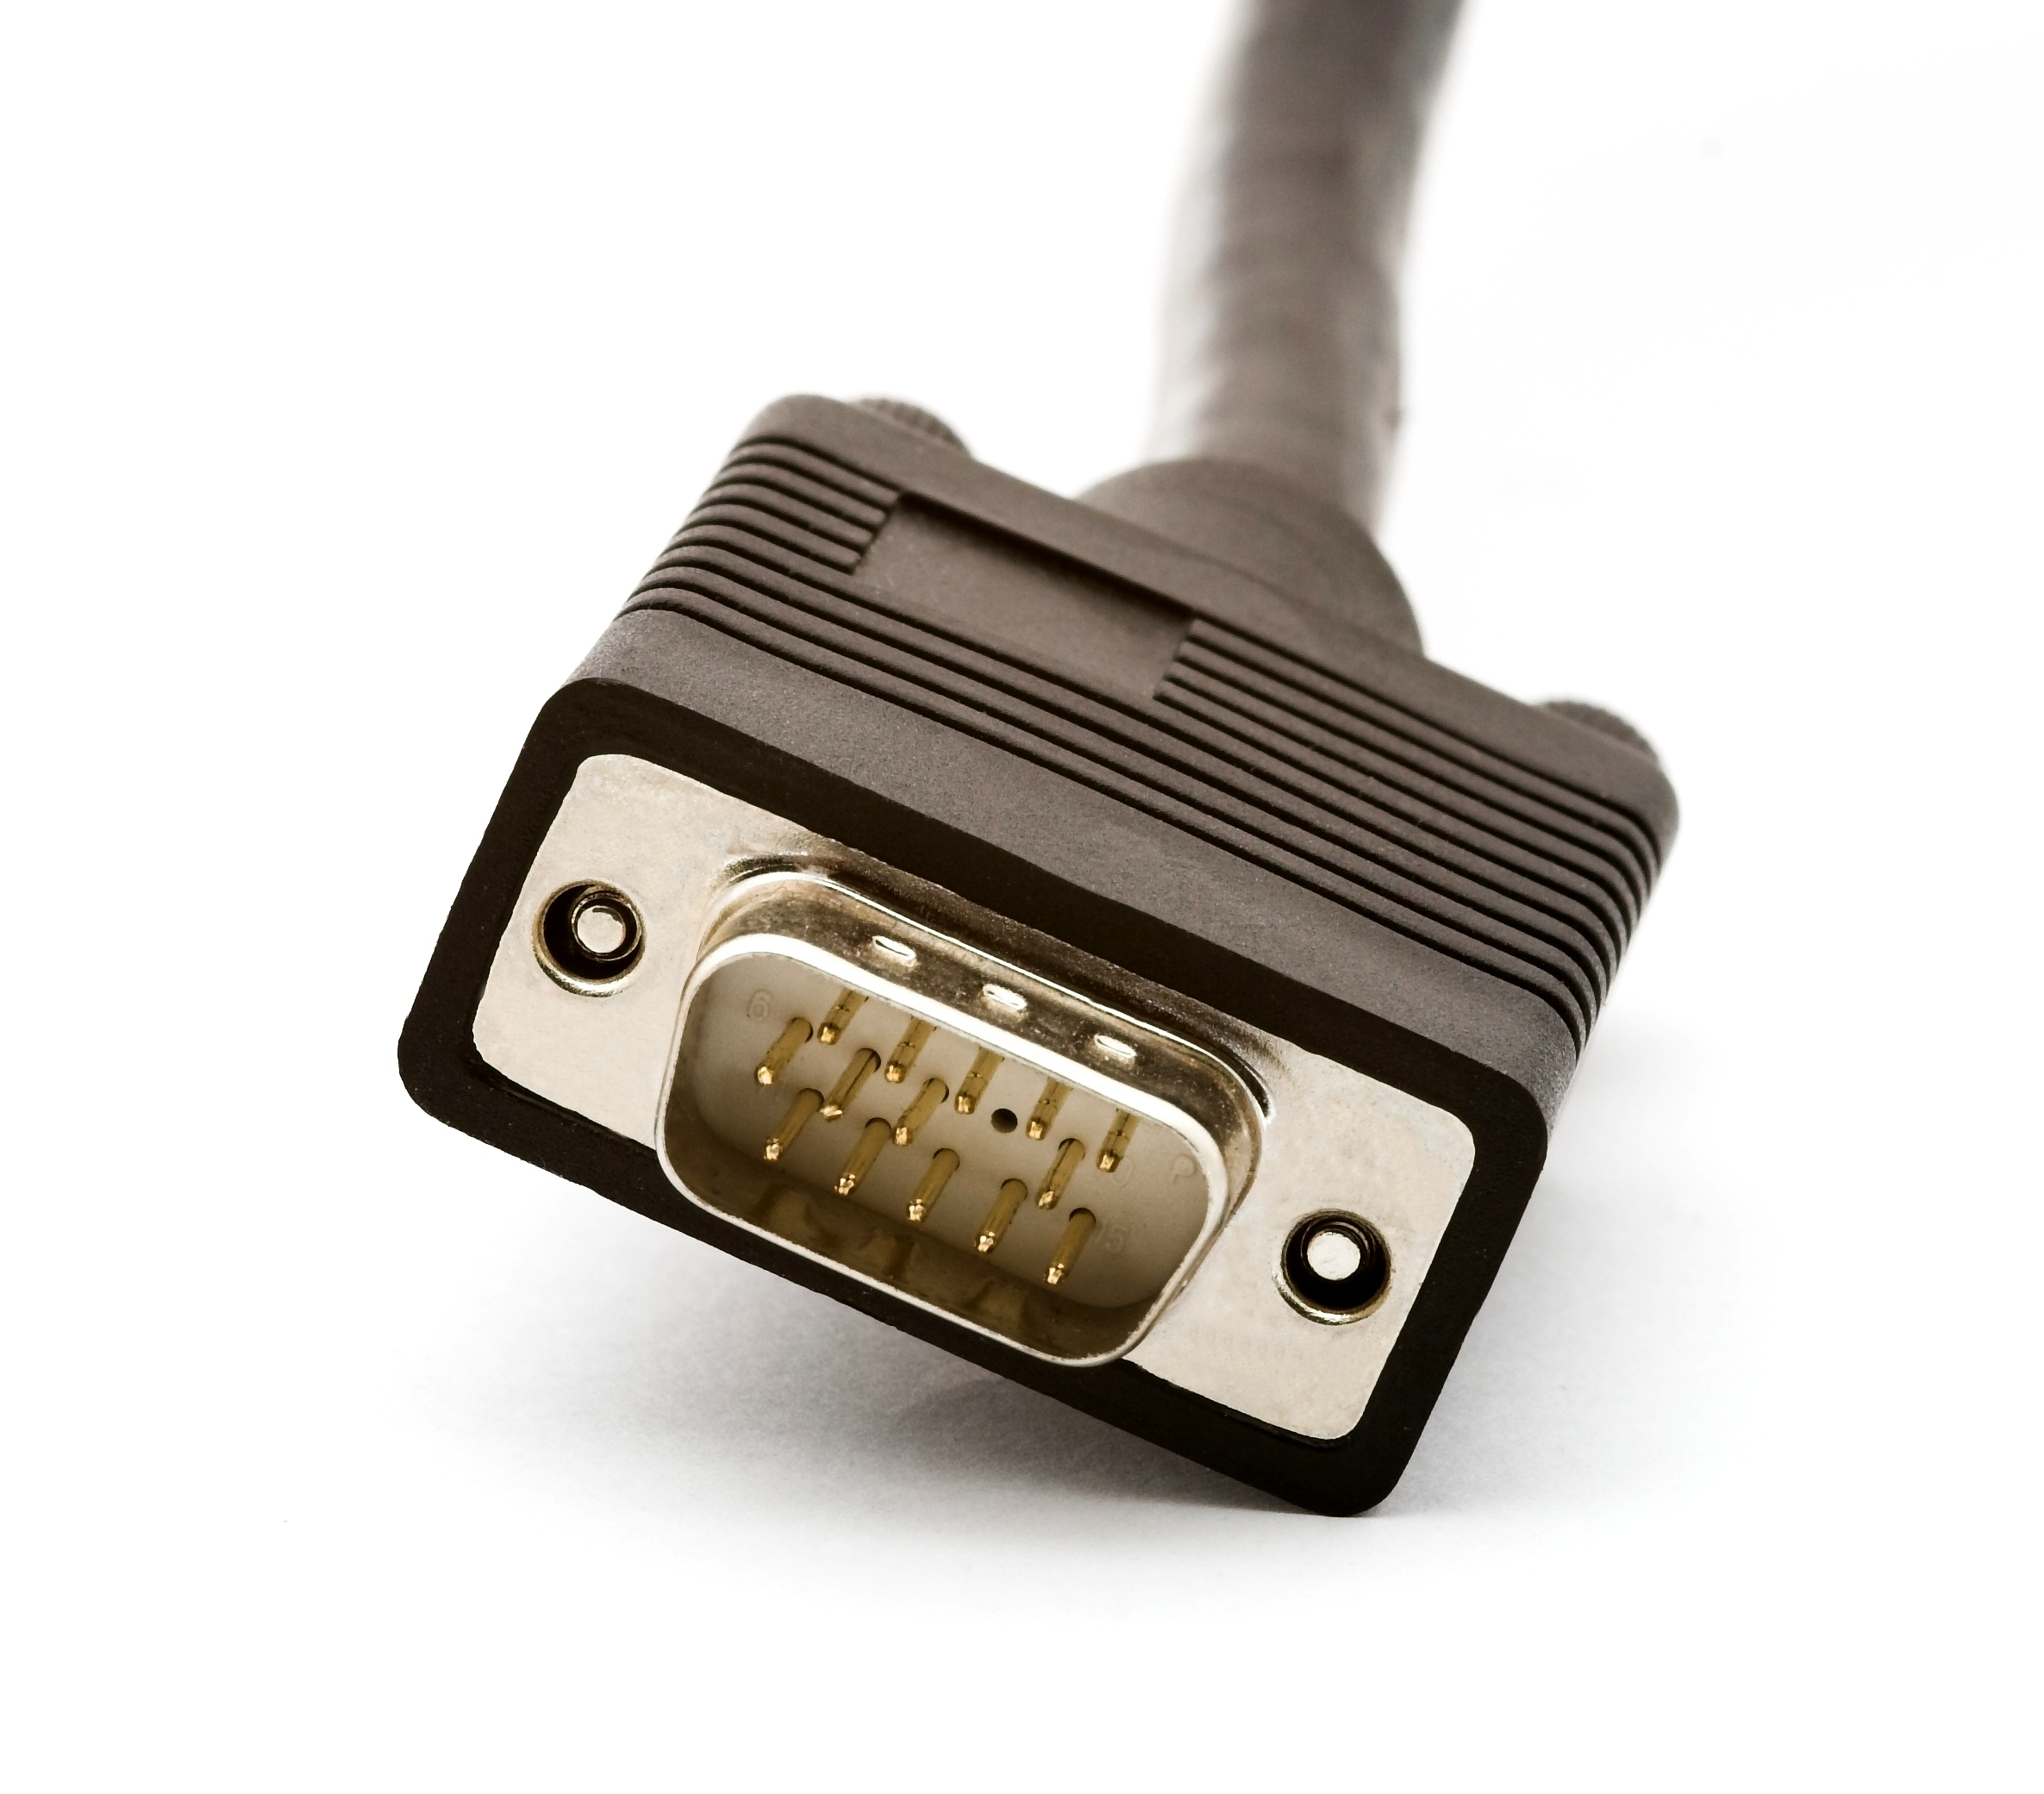 hook up your pc to your tv using a vga cord